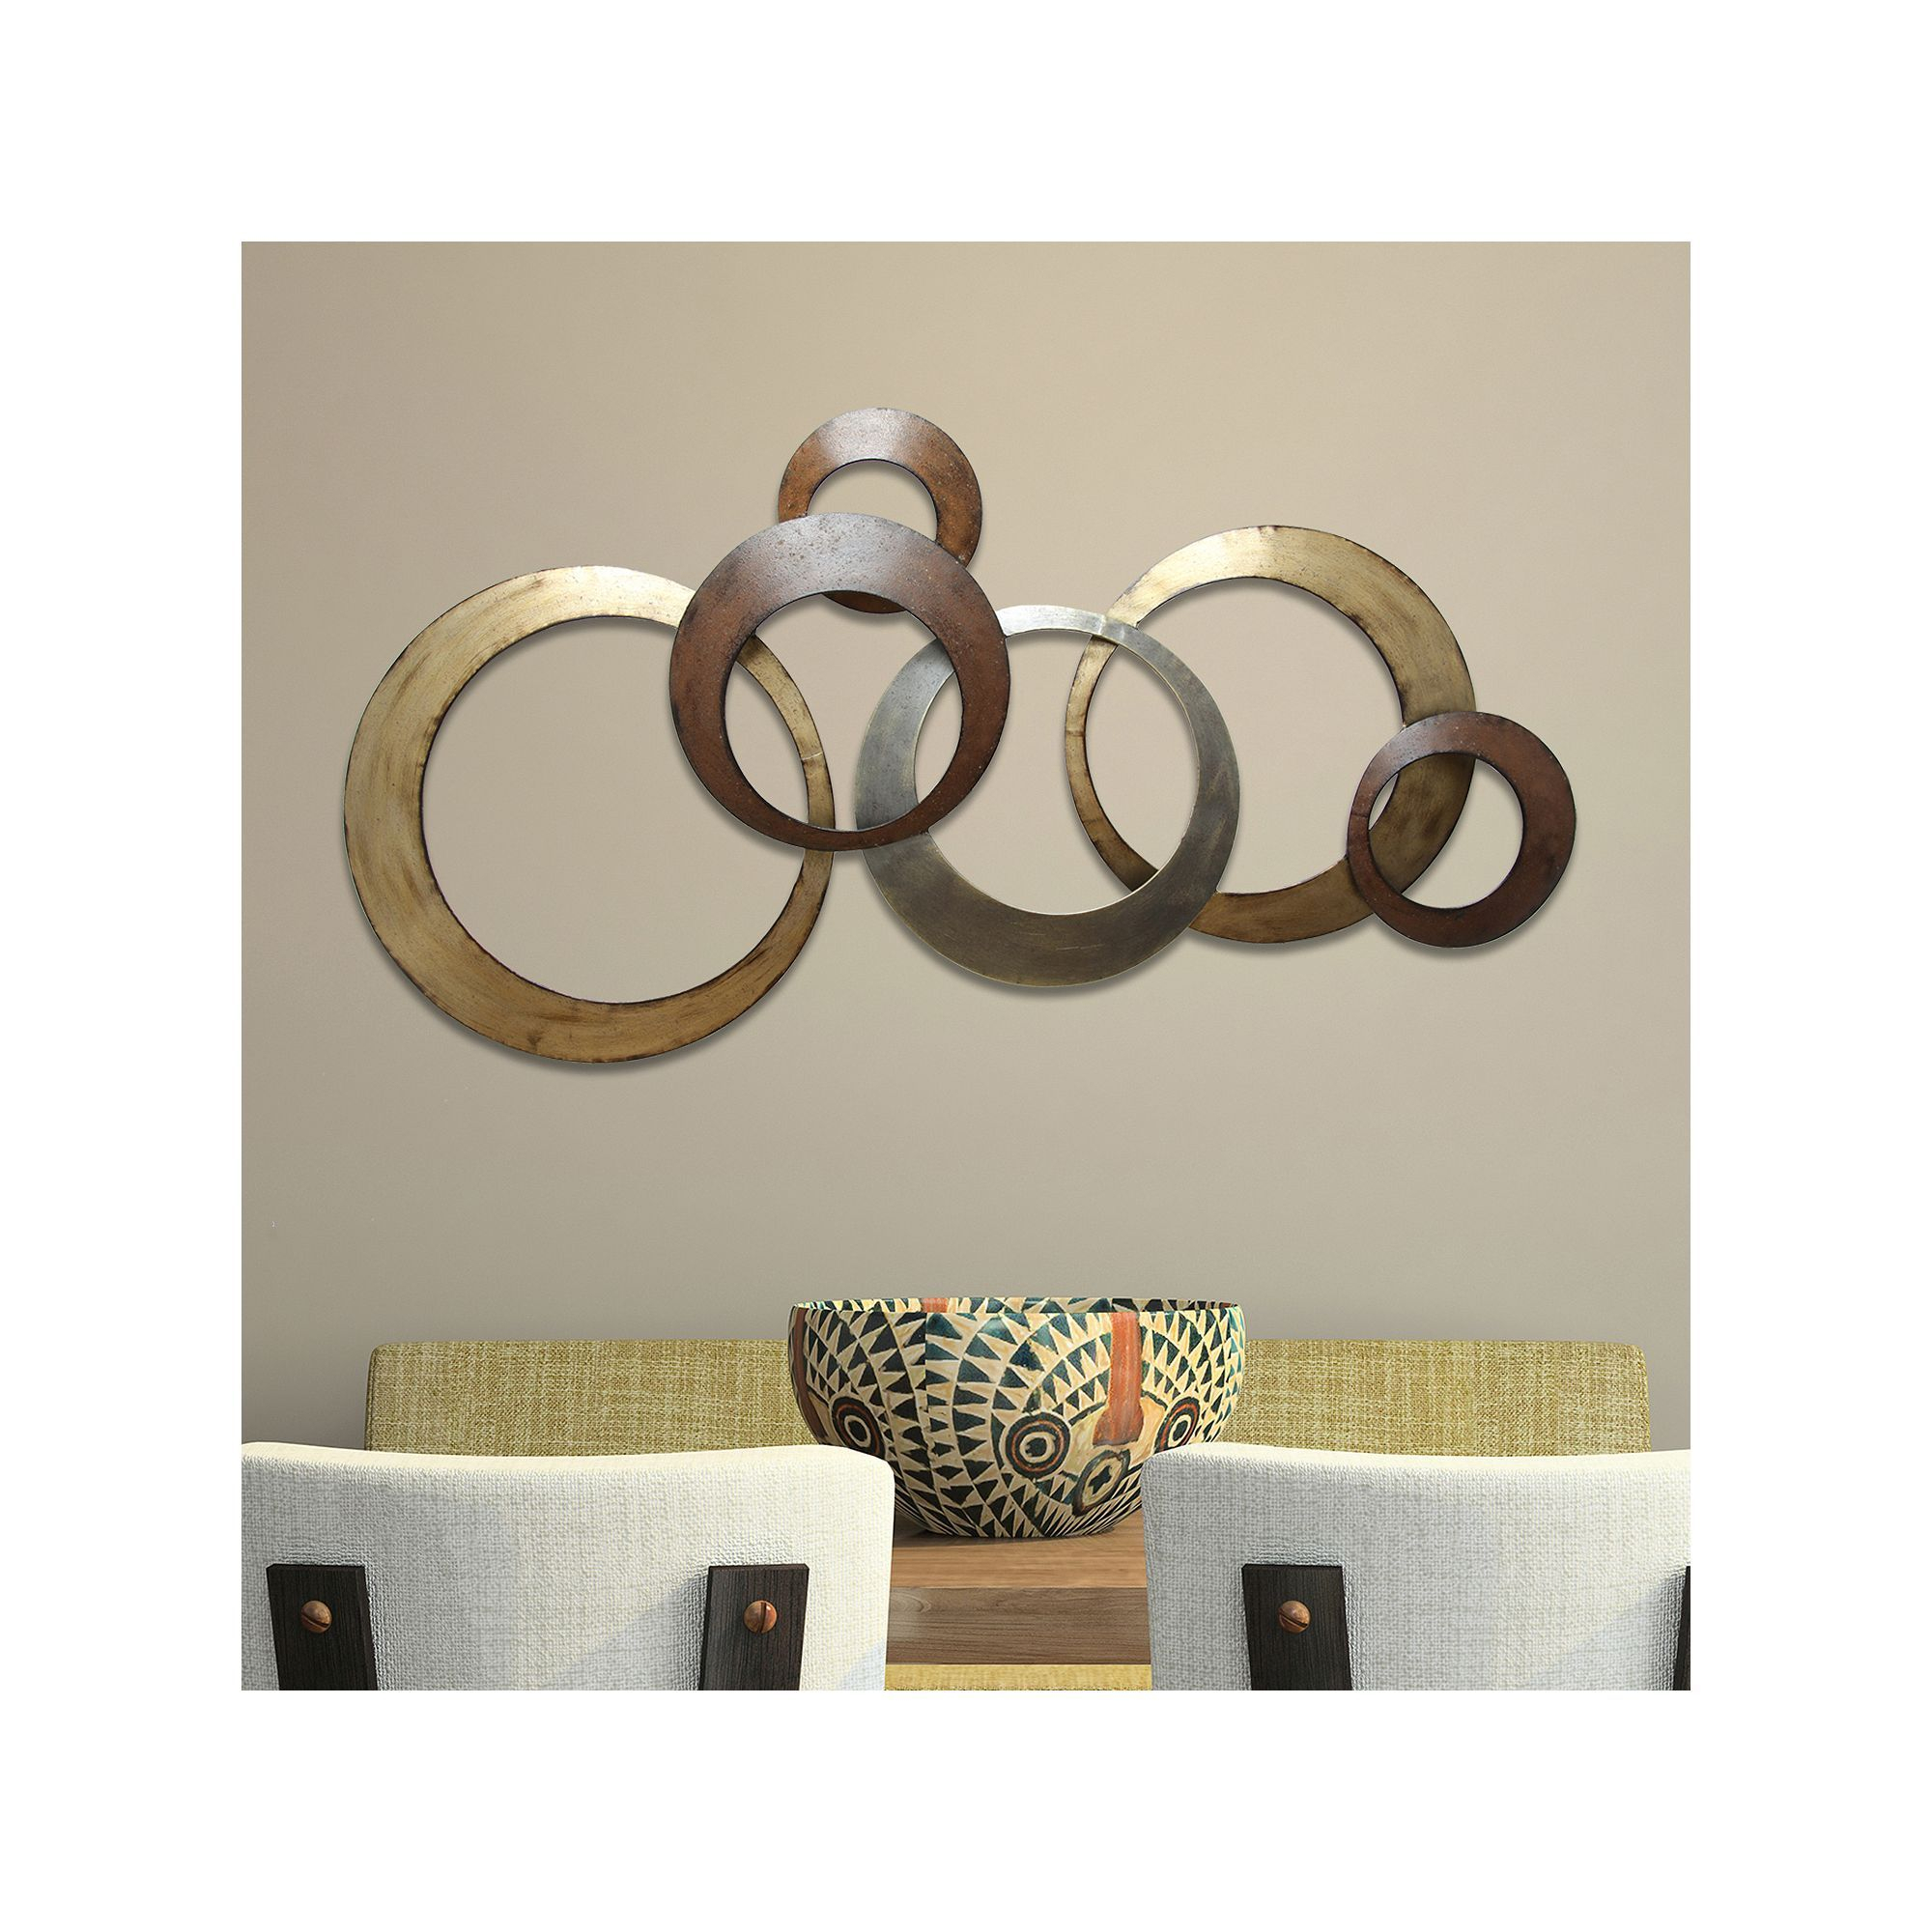 Metal Intended For Rings Wall Decor (View 5 of 20)